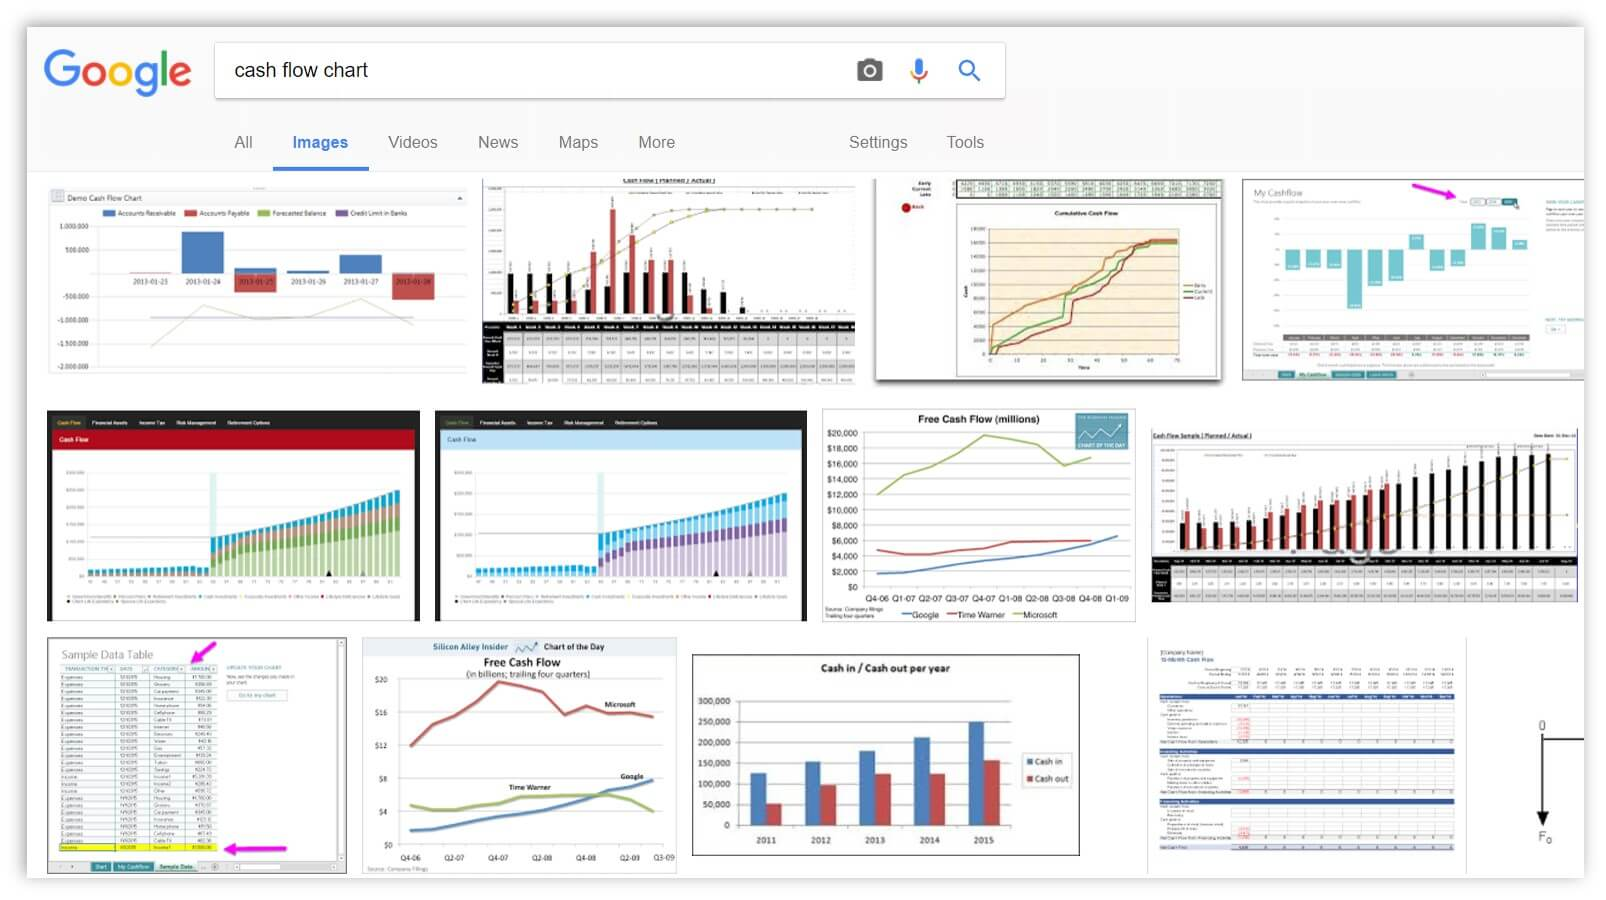 Excel report templates the 3 essential templates youre not using just try to do an image search for cash flow chart and youll see just how difficult it can be to create a chart that is easy to read and understandable geenschuldenfo Choice Image